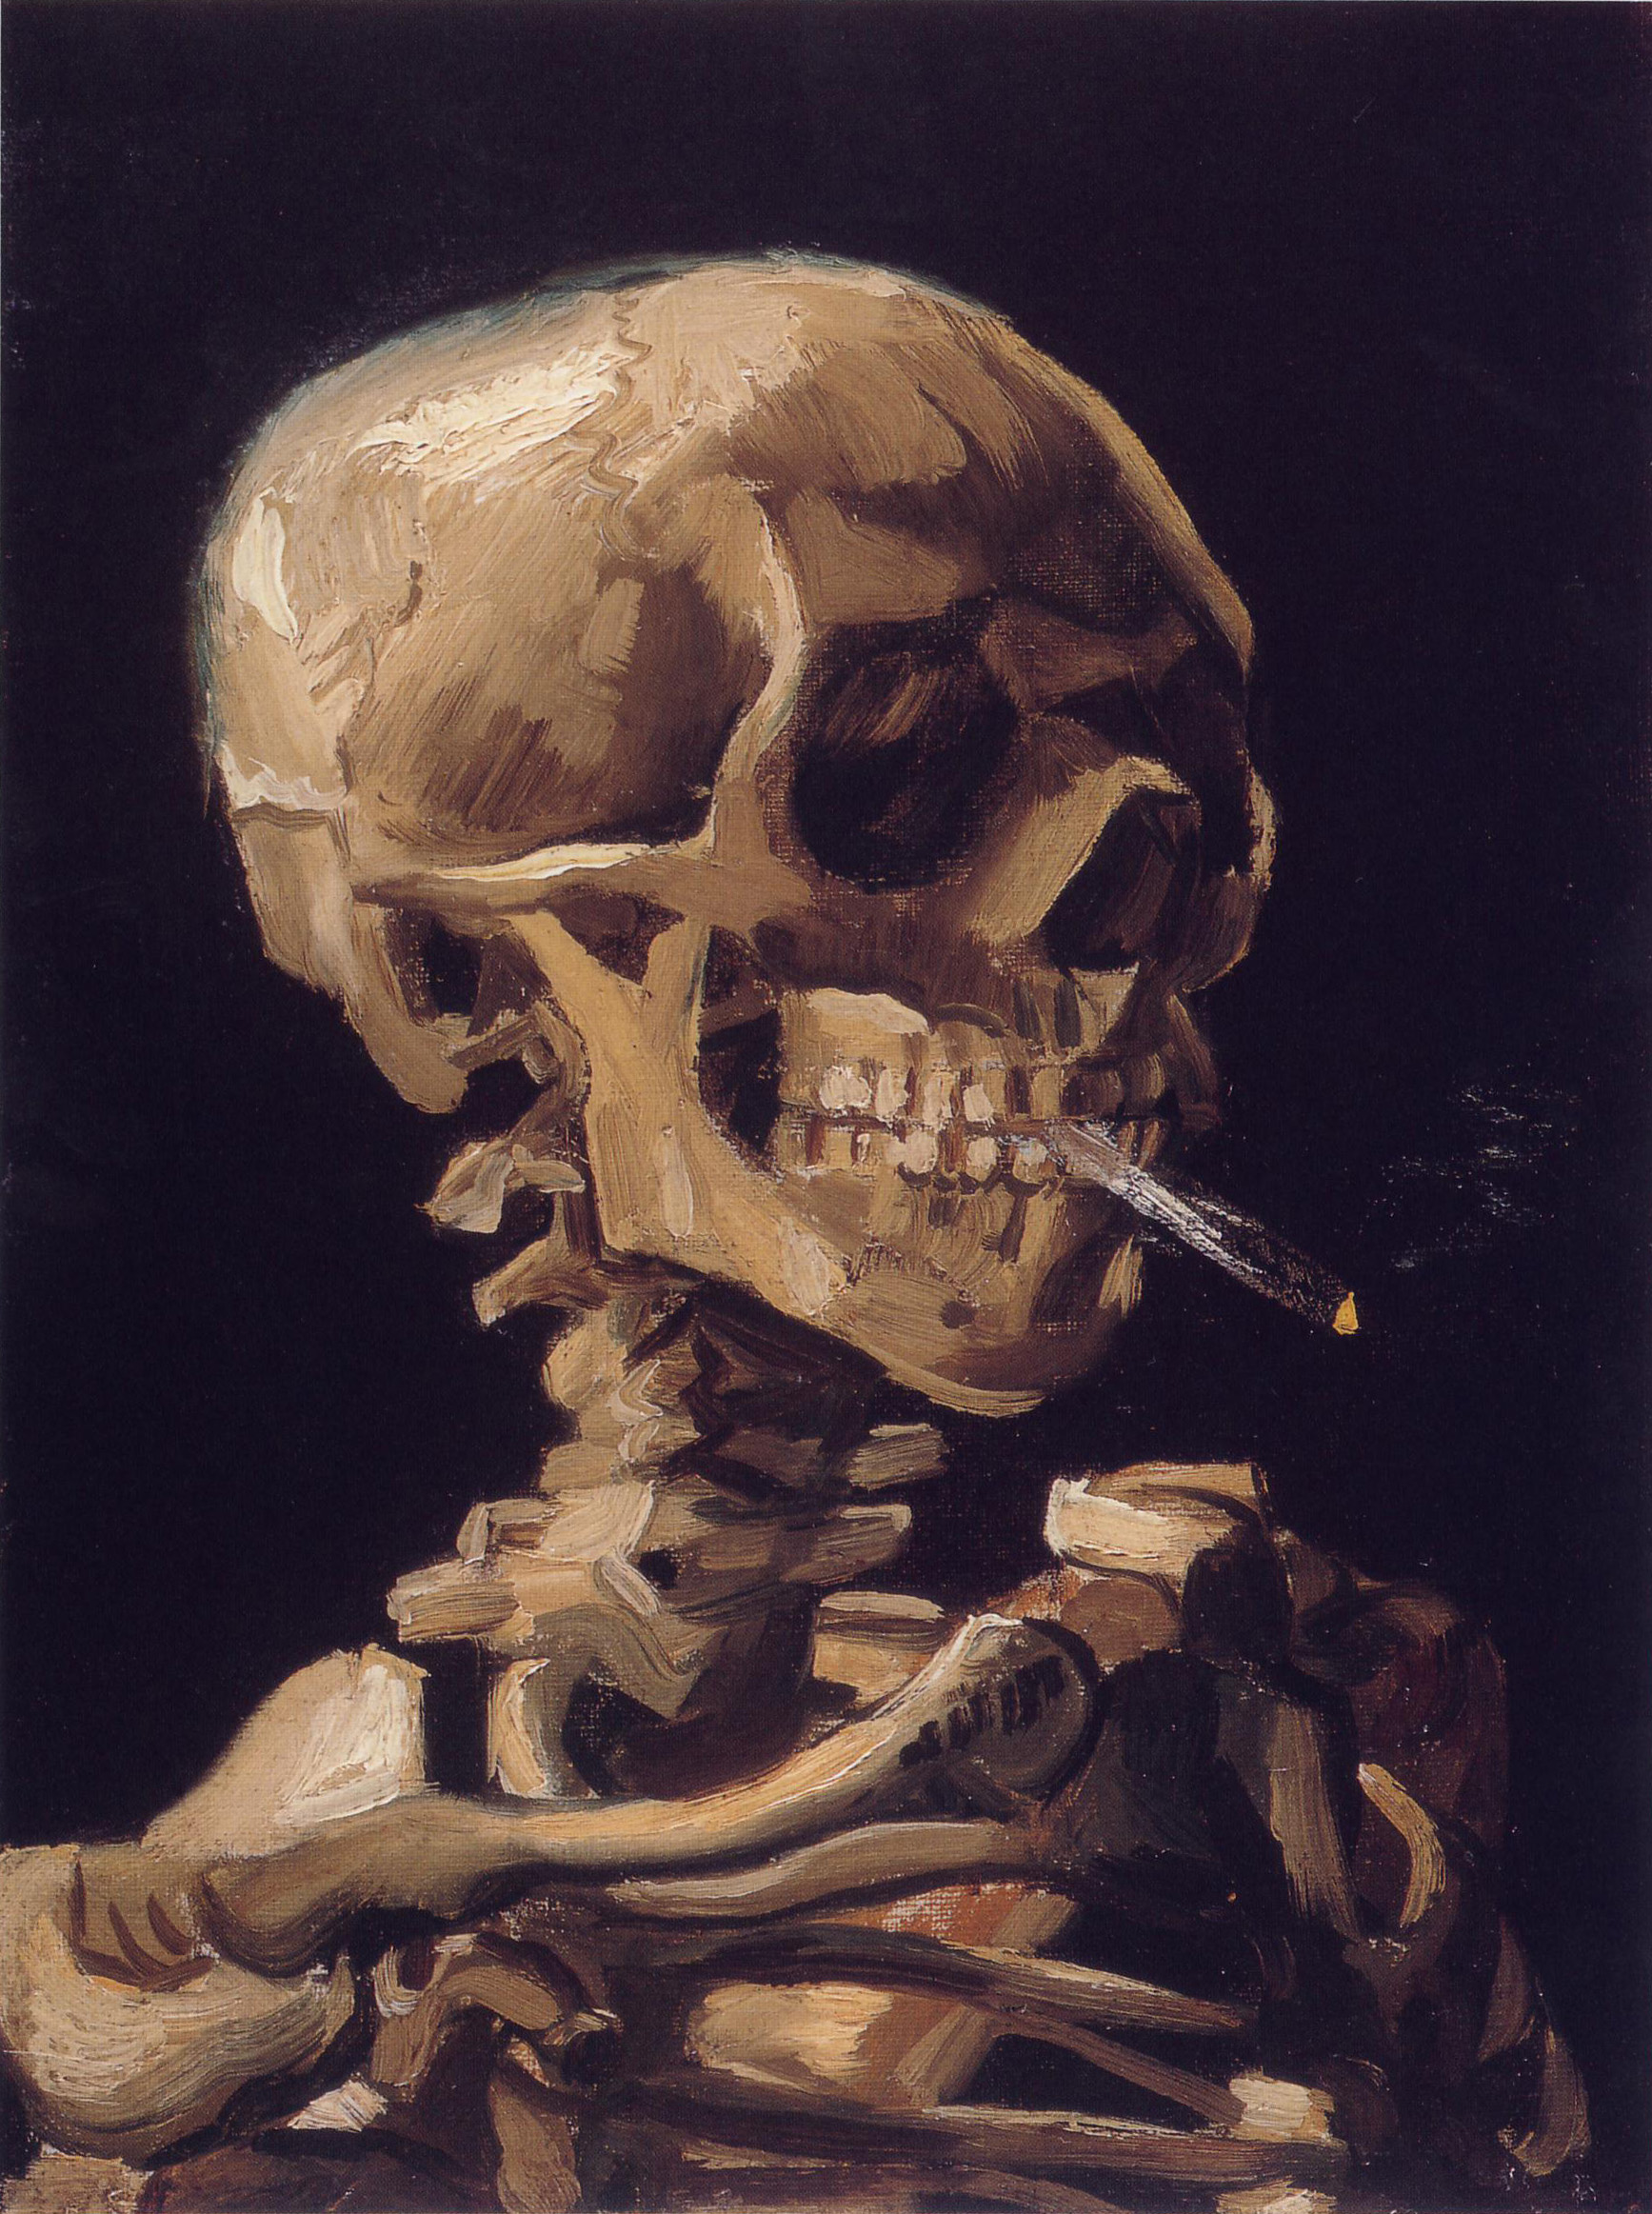 Van Gogh's Skull with a Burning Cigarette